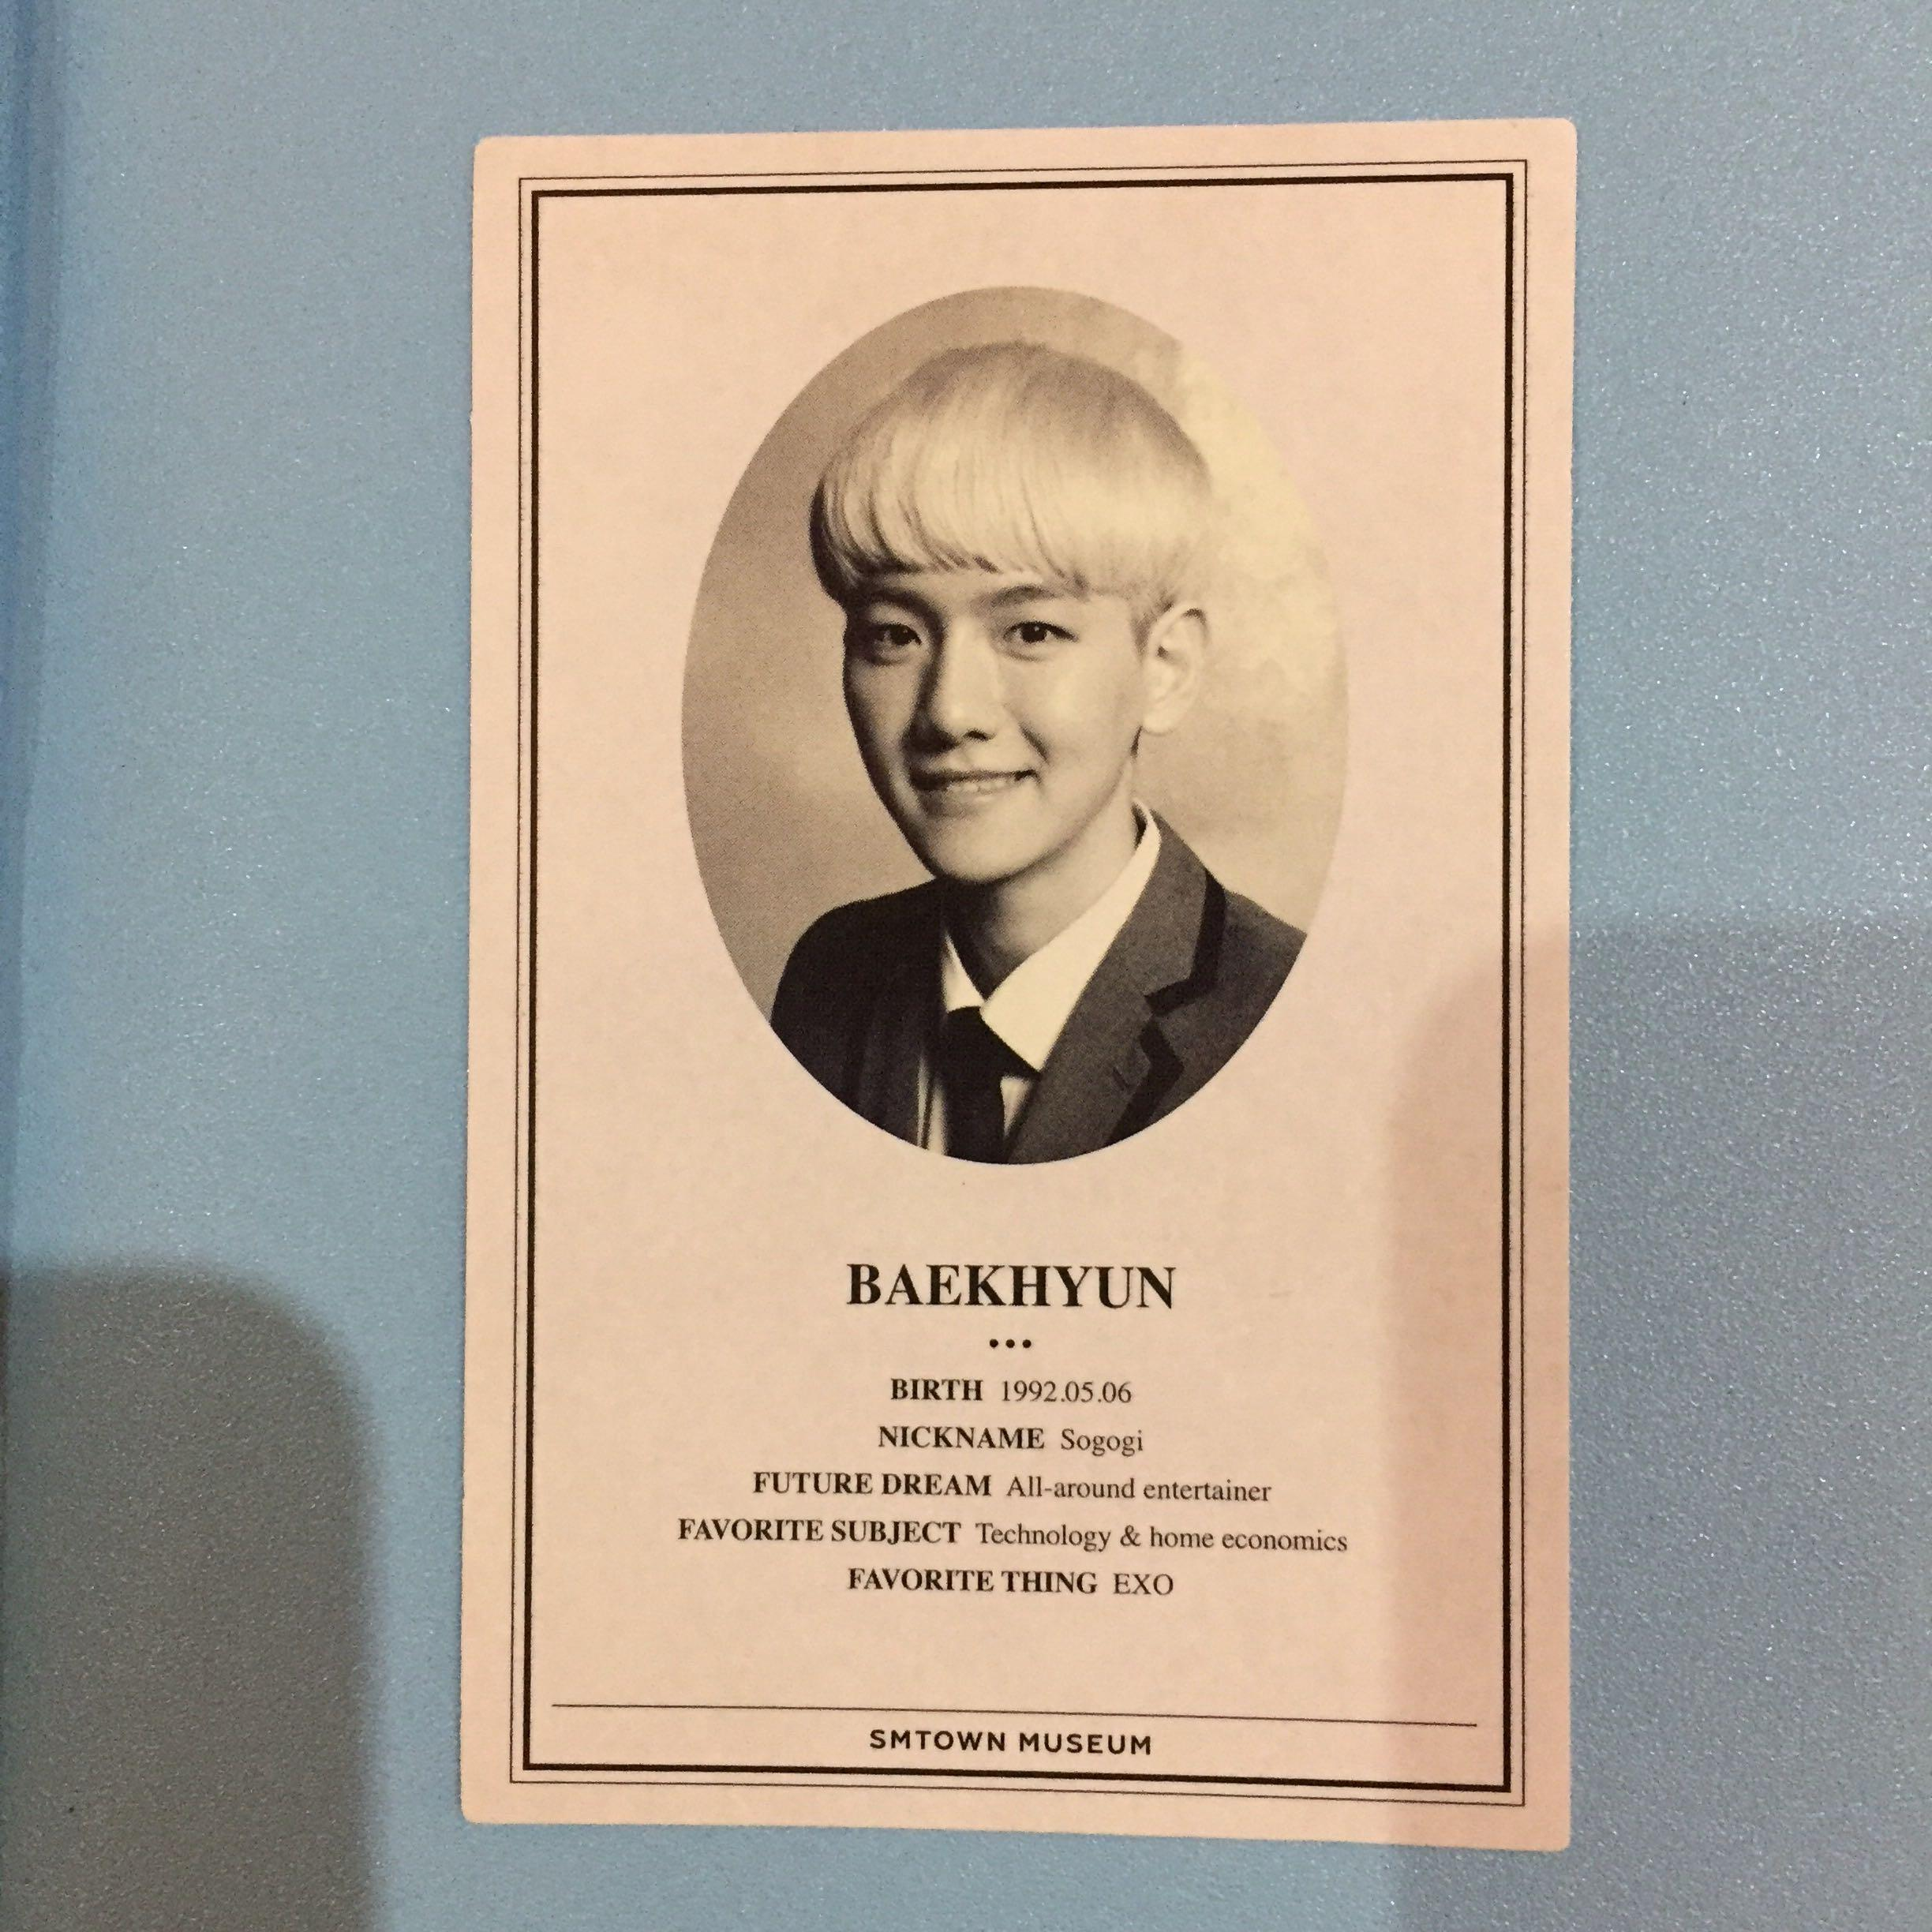 Photocard exo baekhyun wolf, MAMA B (official smtown museum)